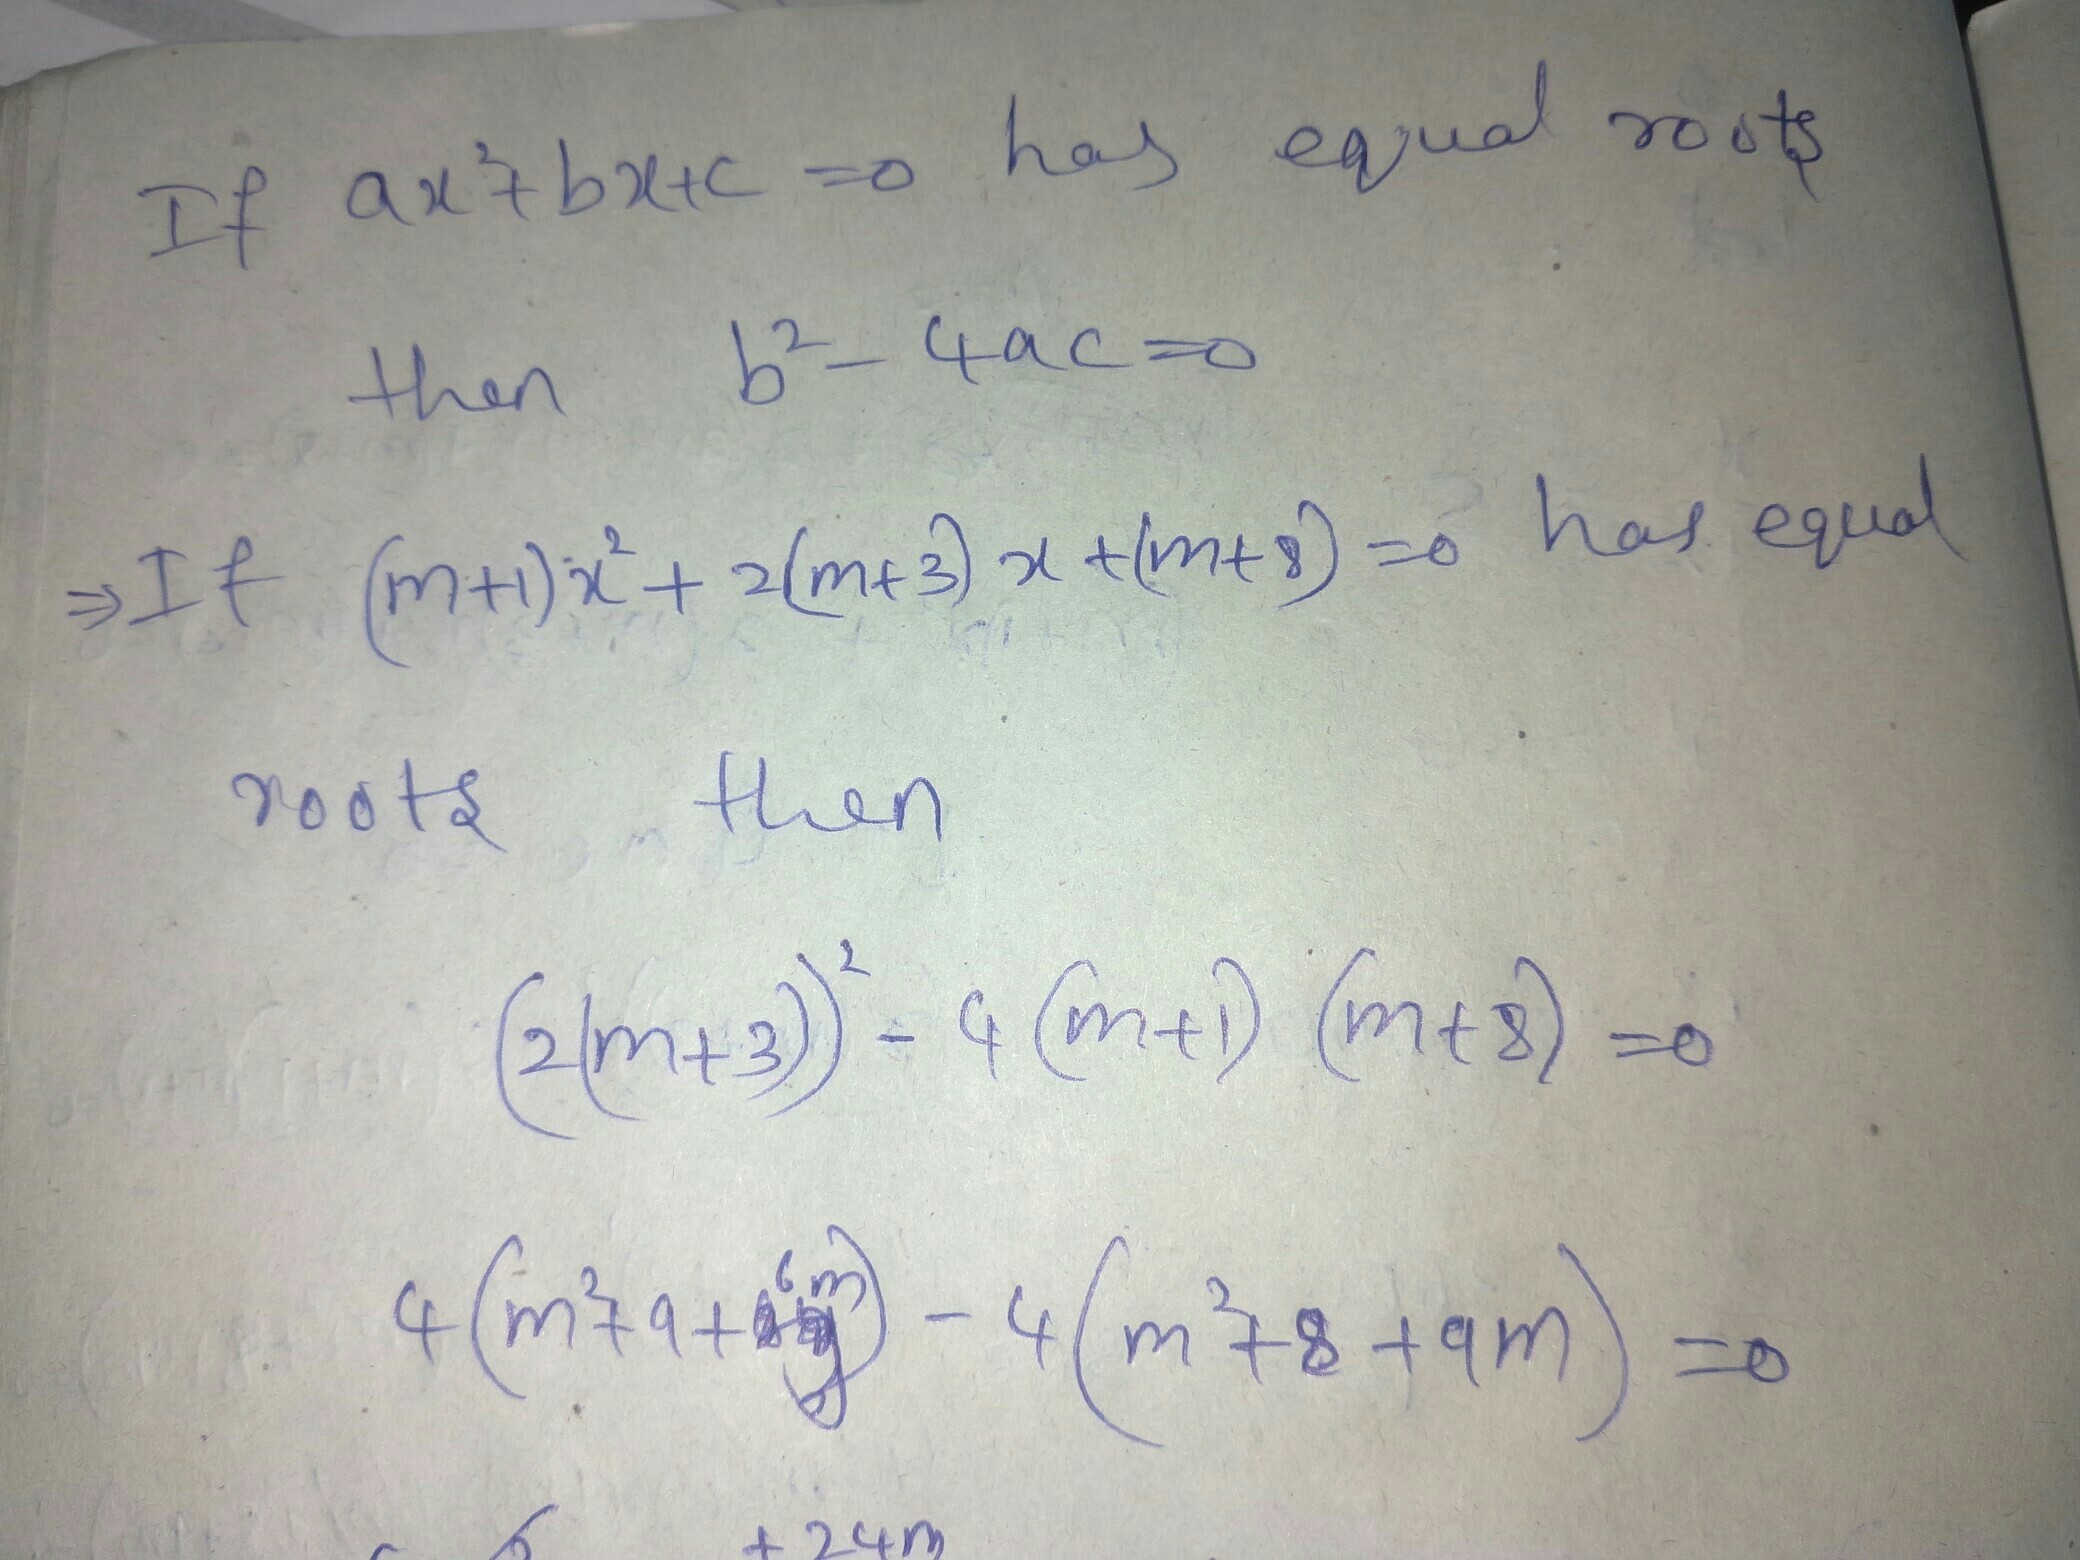 Find The Value Of M For Which The Quadratic Equation (m+1